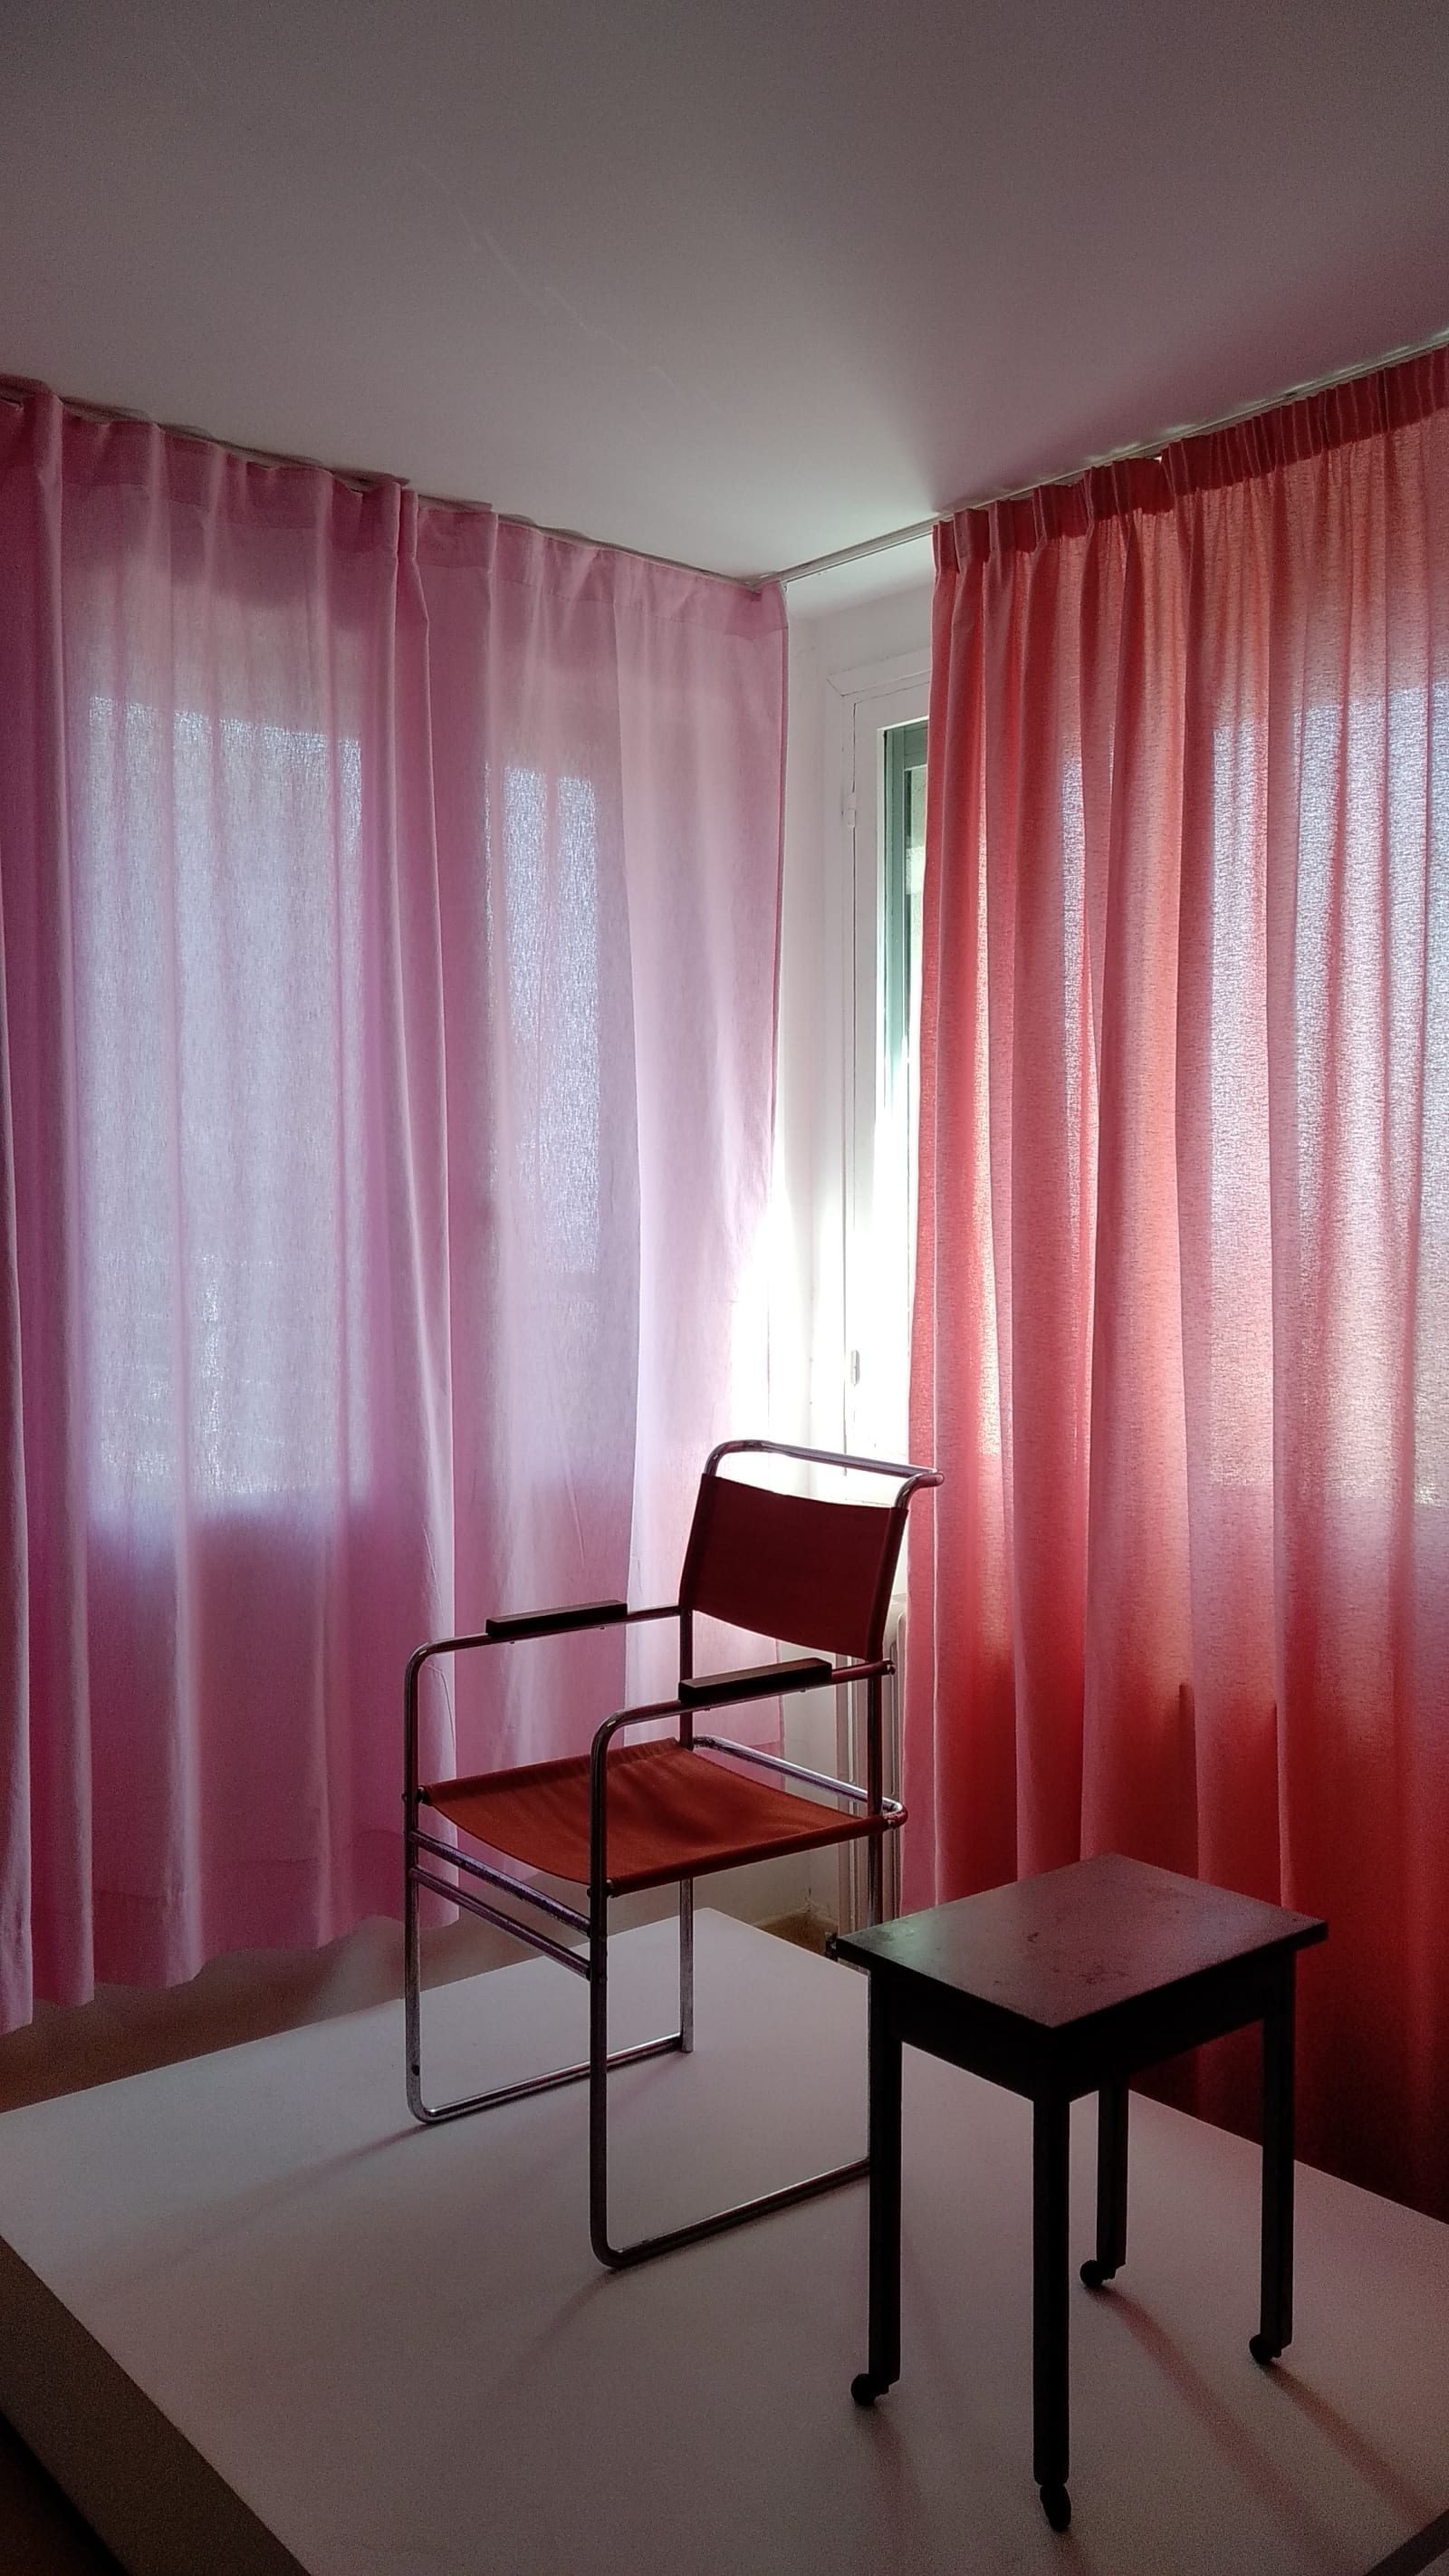 uncertain - In Villa Noailles, a red chair and a brown table are displayed in front of a pink curtain and a coral curtain - chair, table, curtains - paul lahana